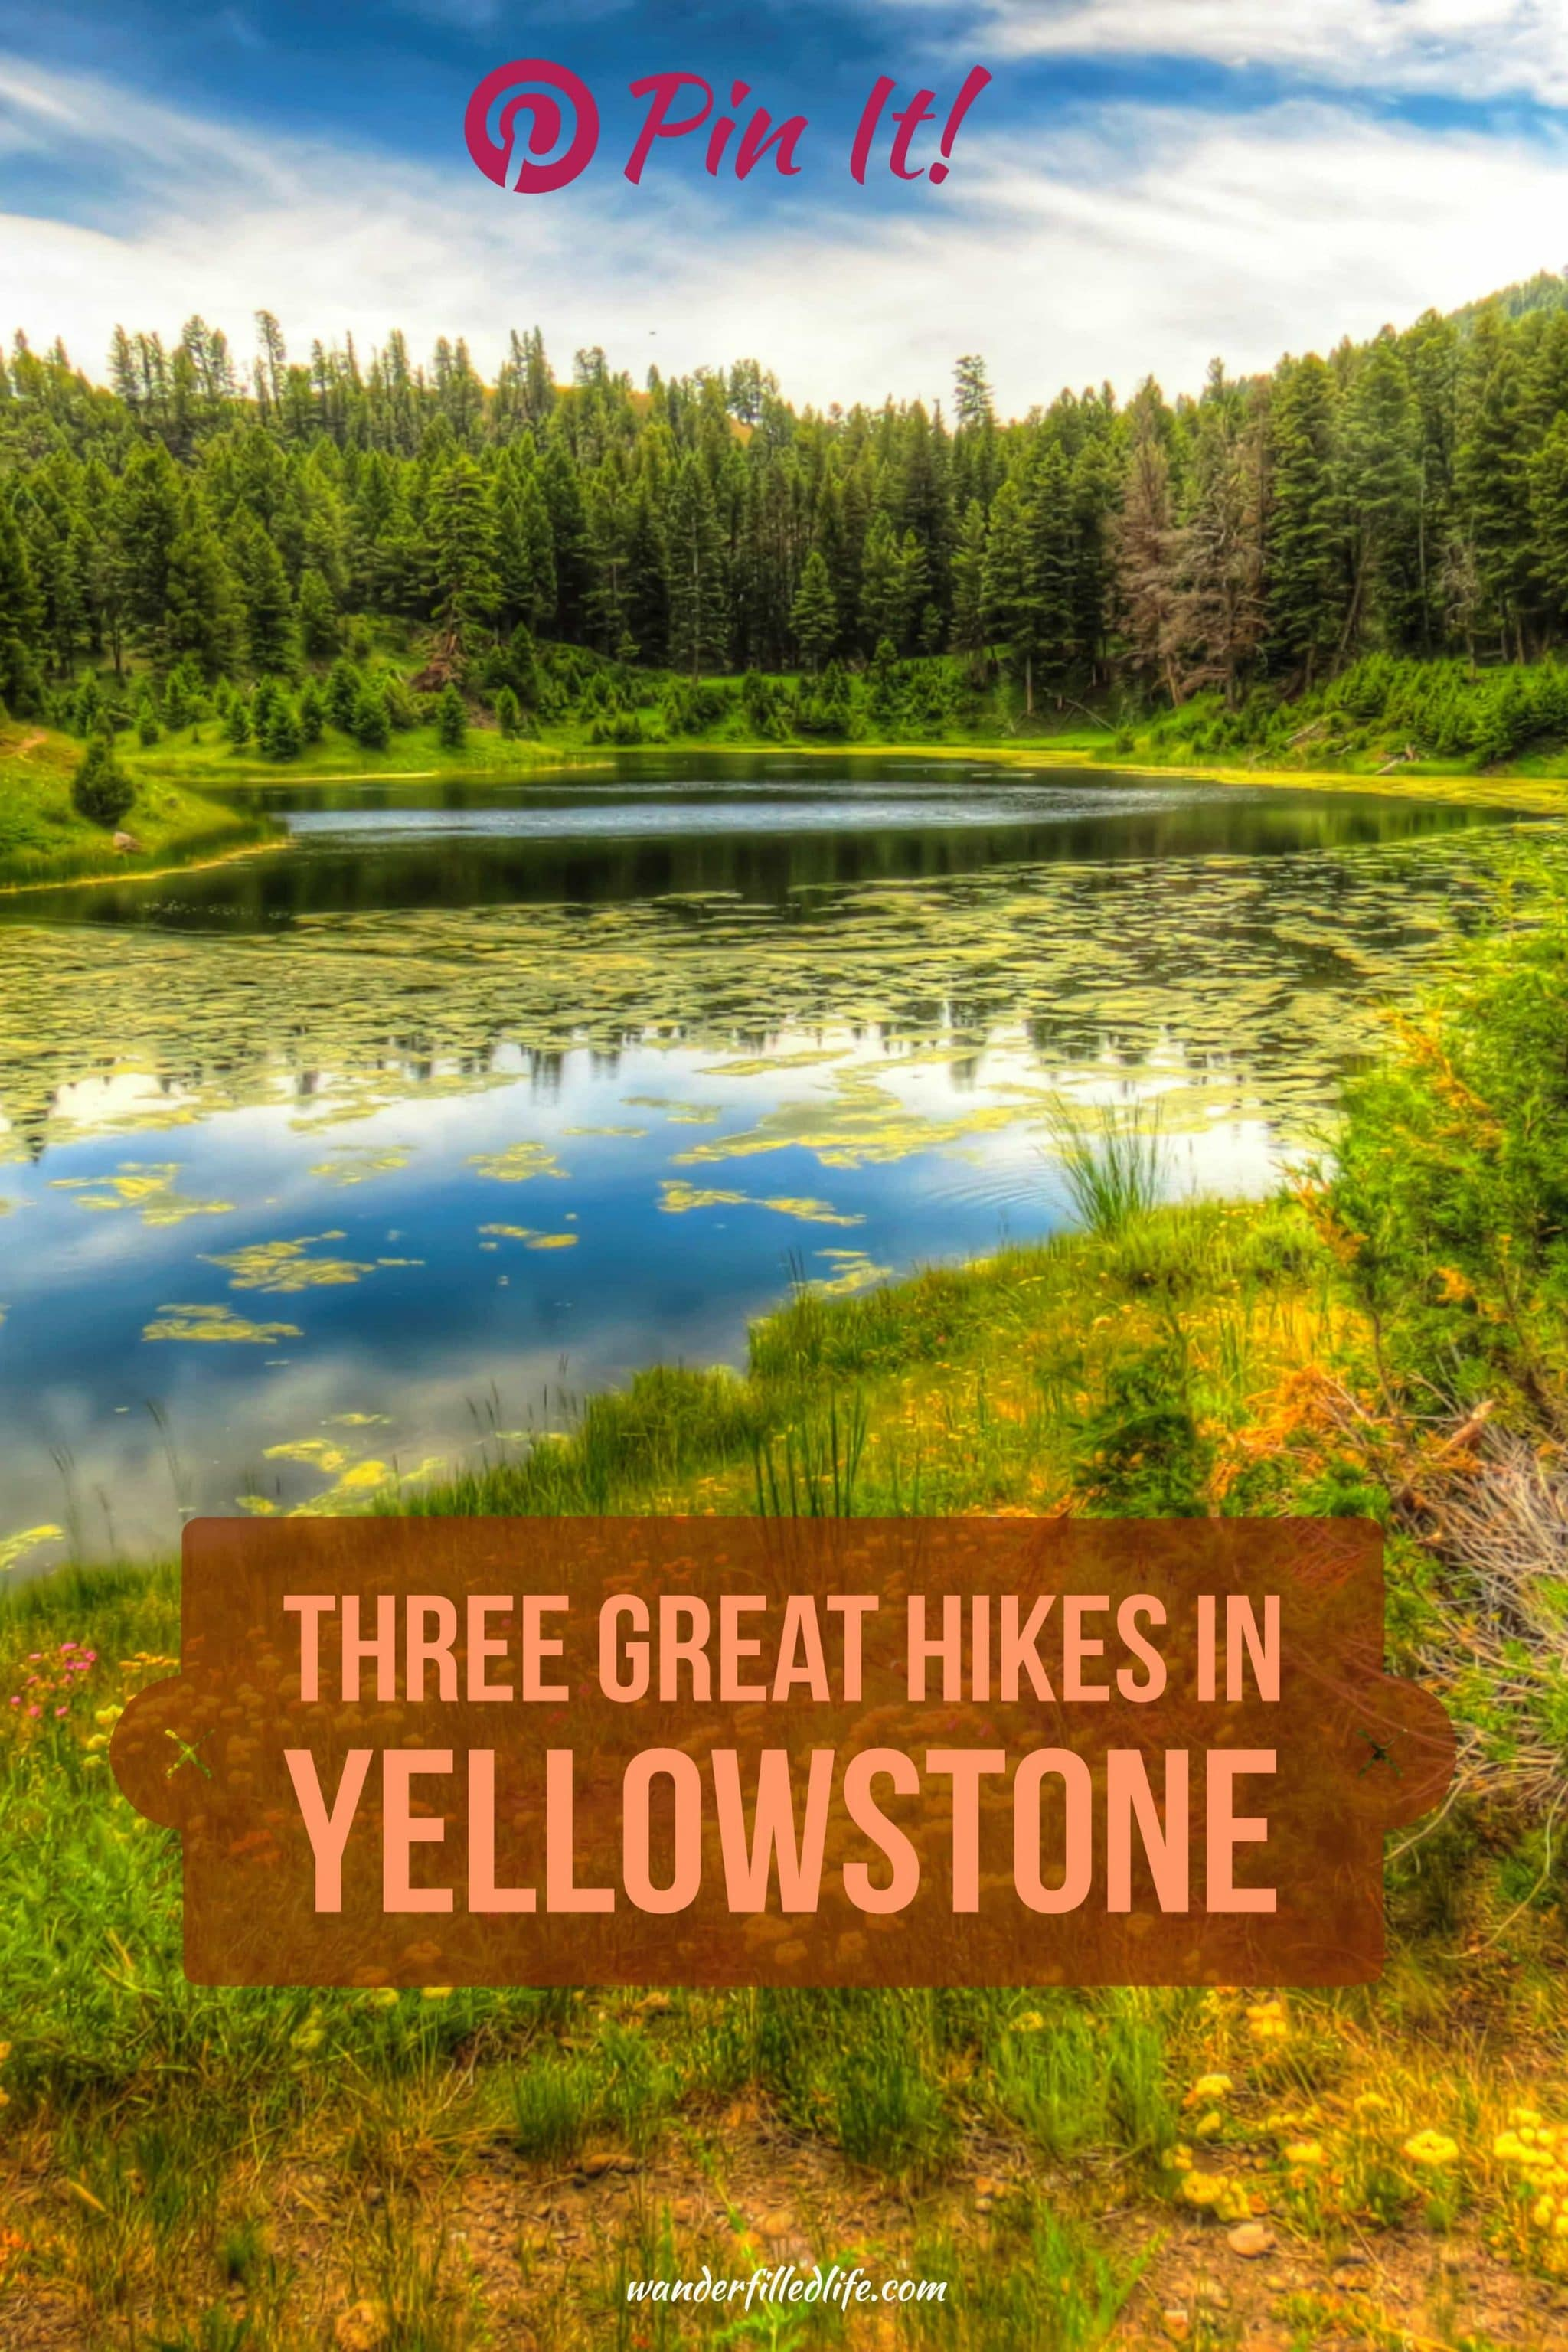 We found solitude and peacefulness, away from the summer crowds, while hiking. Here we share three easy-moderate Yellowstone hikes you can enjoy, too.